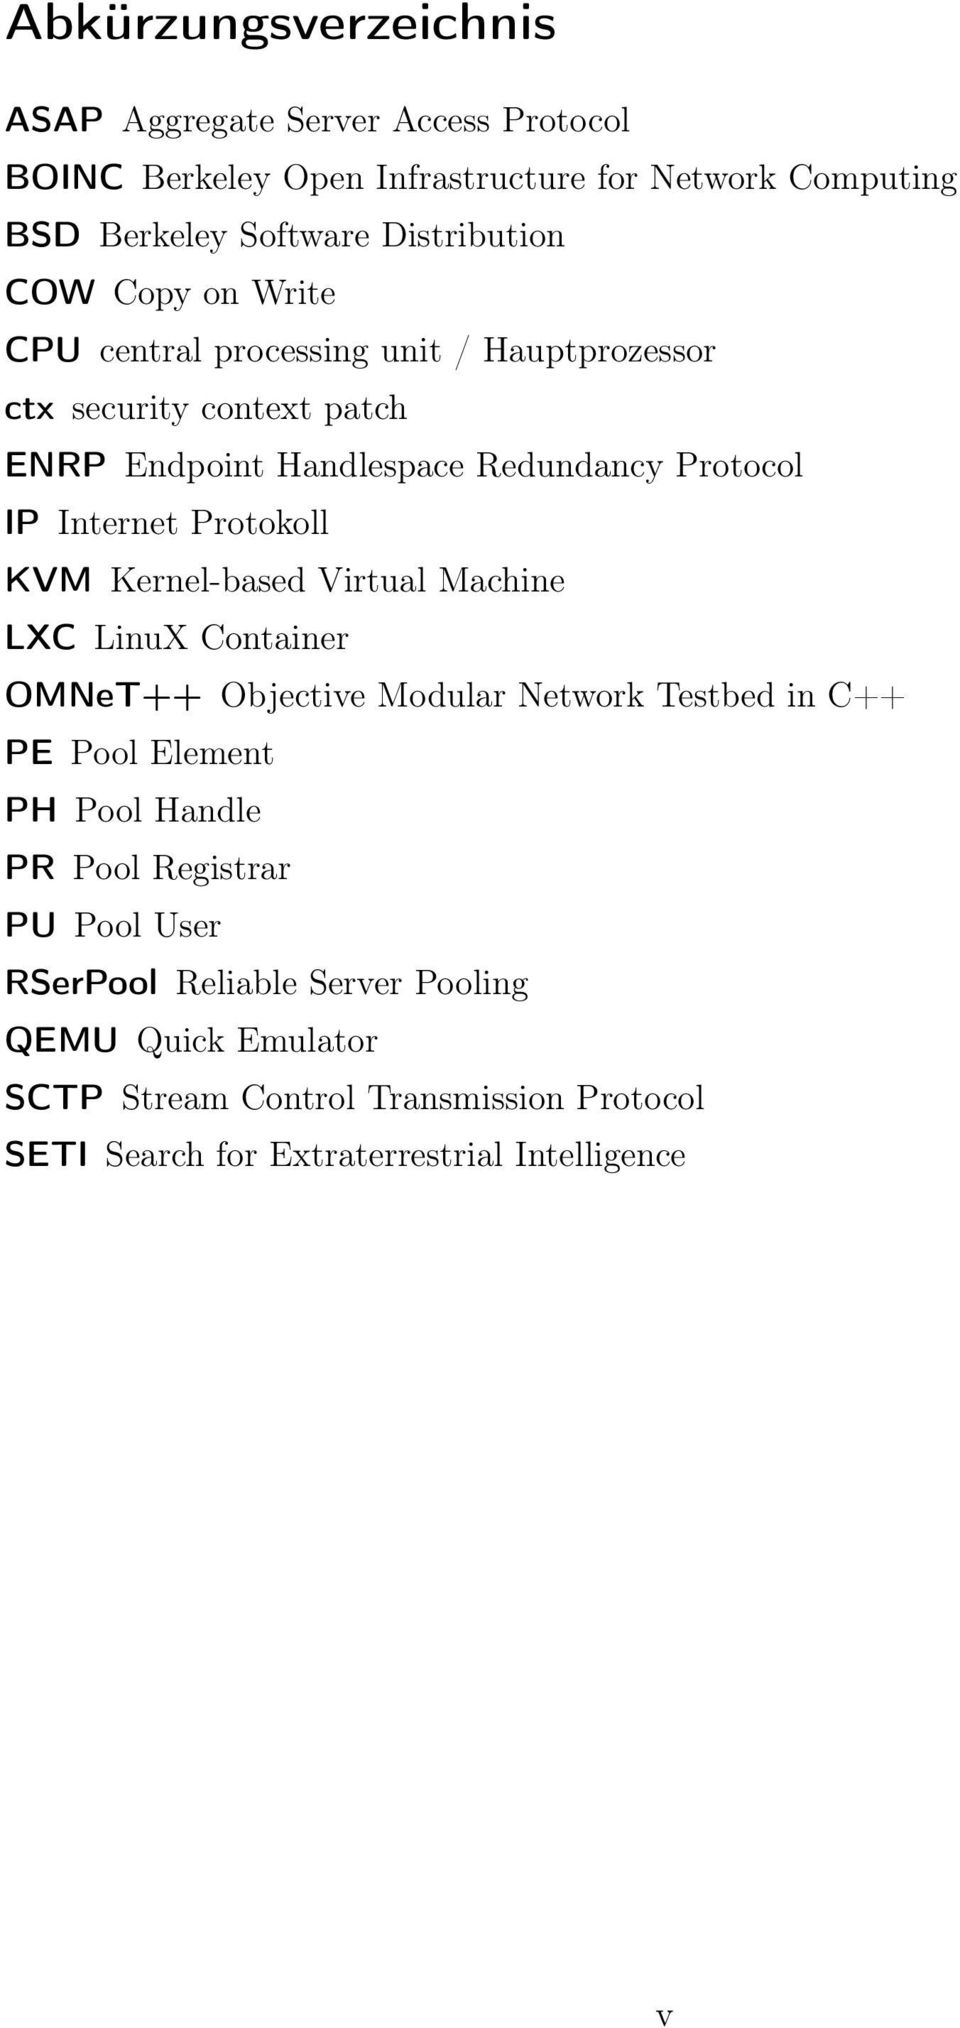 Protokoll KVM Kernel-based Virtual Machine LXC LinuX Container OMNeT++ Objective Modular Network Testbed in C++ PE Pool Element PH Pool Handle PR Pool